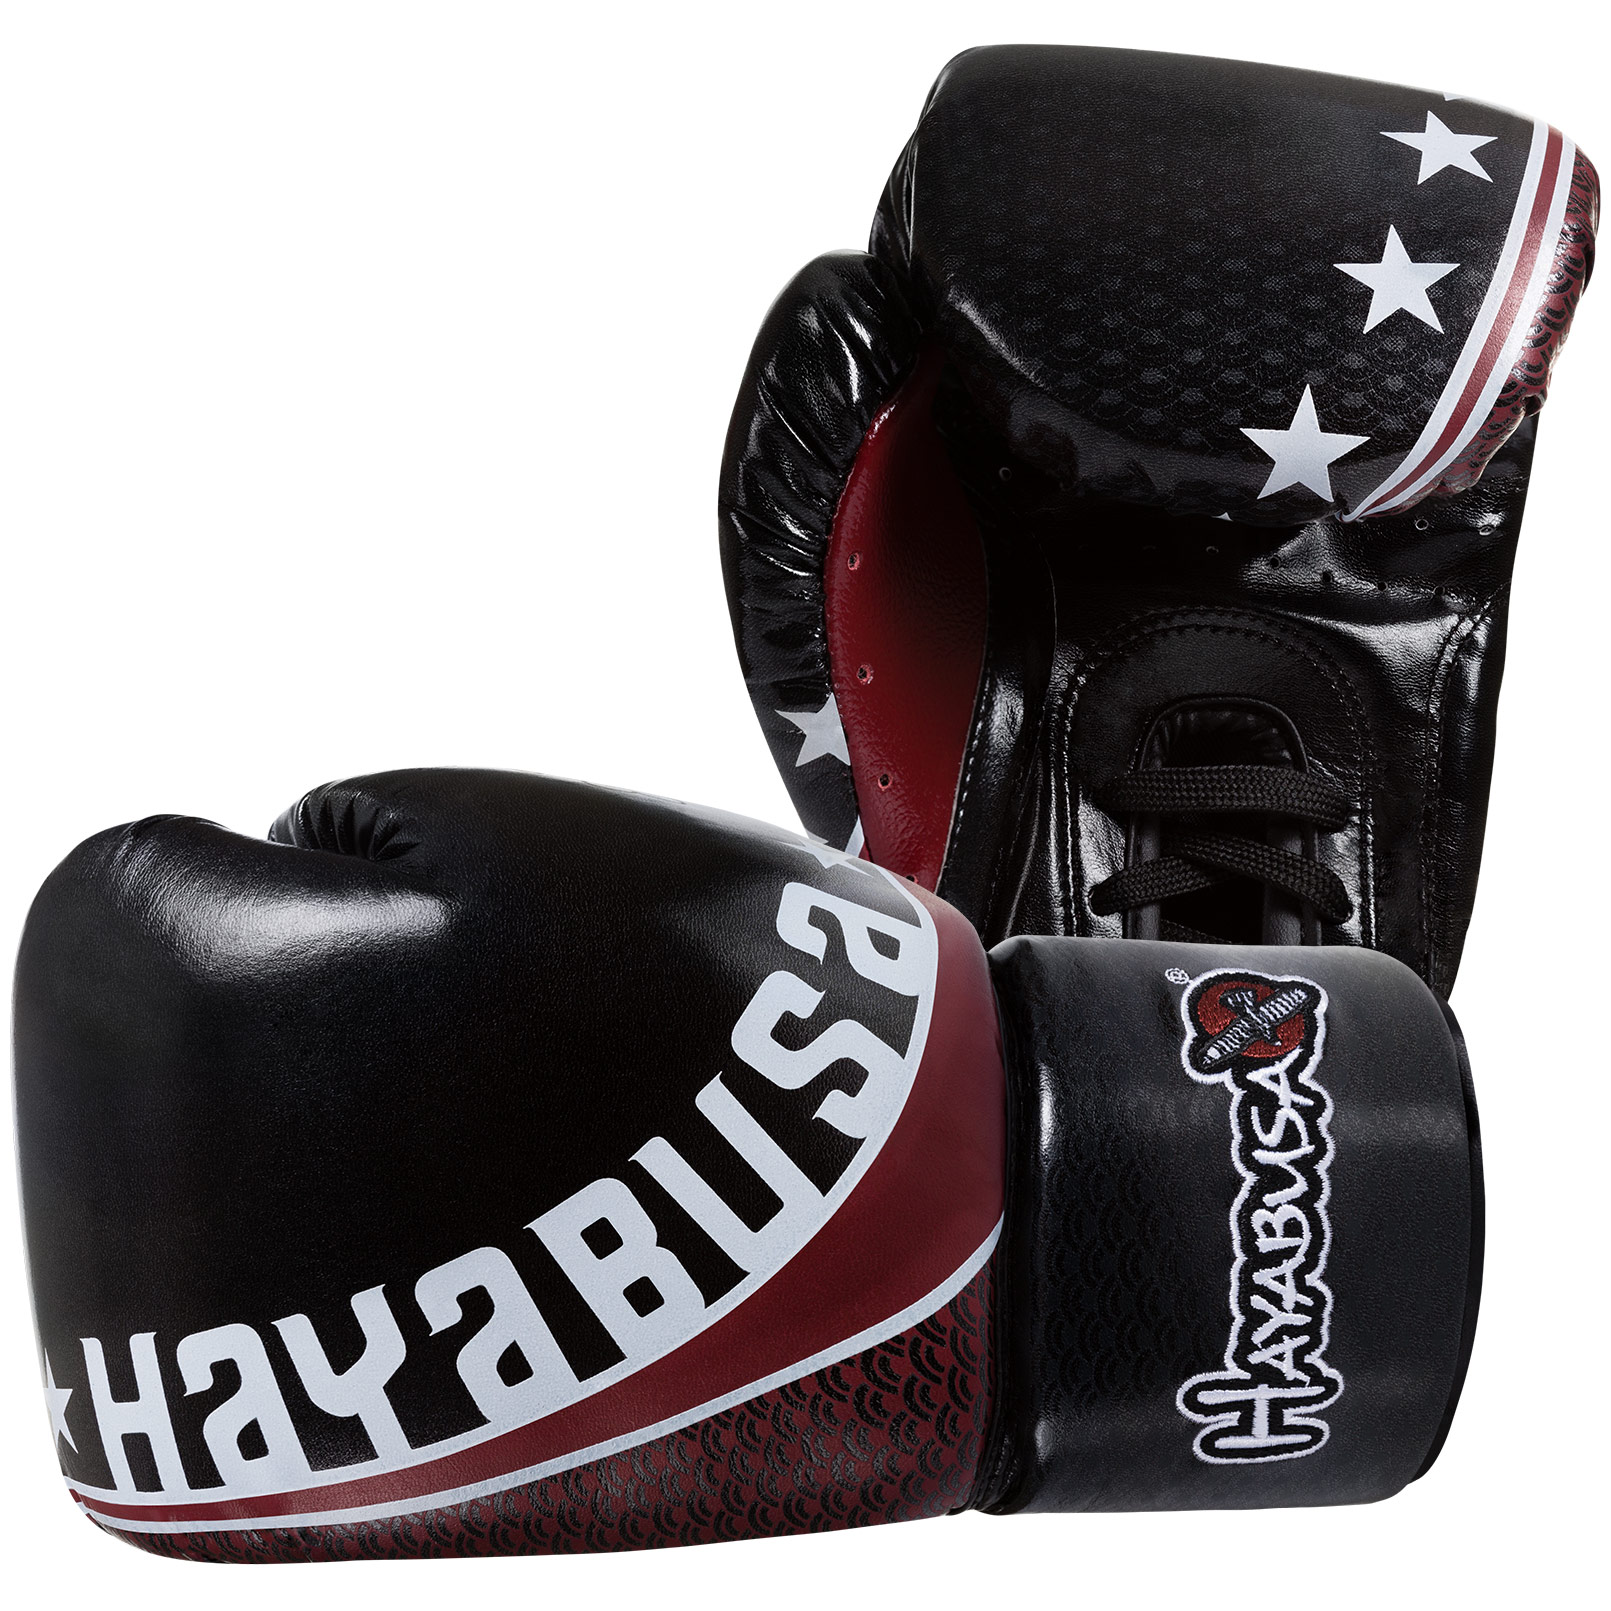 Muay Thai Gloves - black